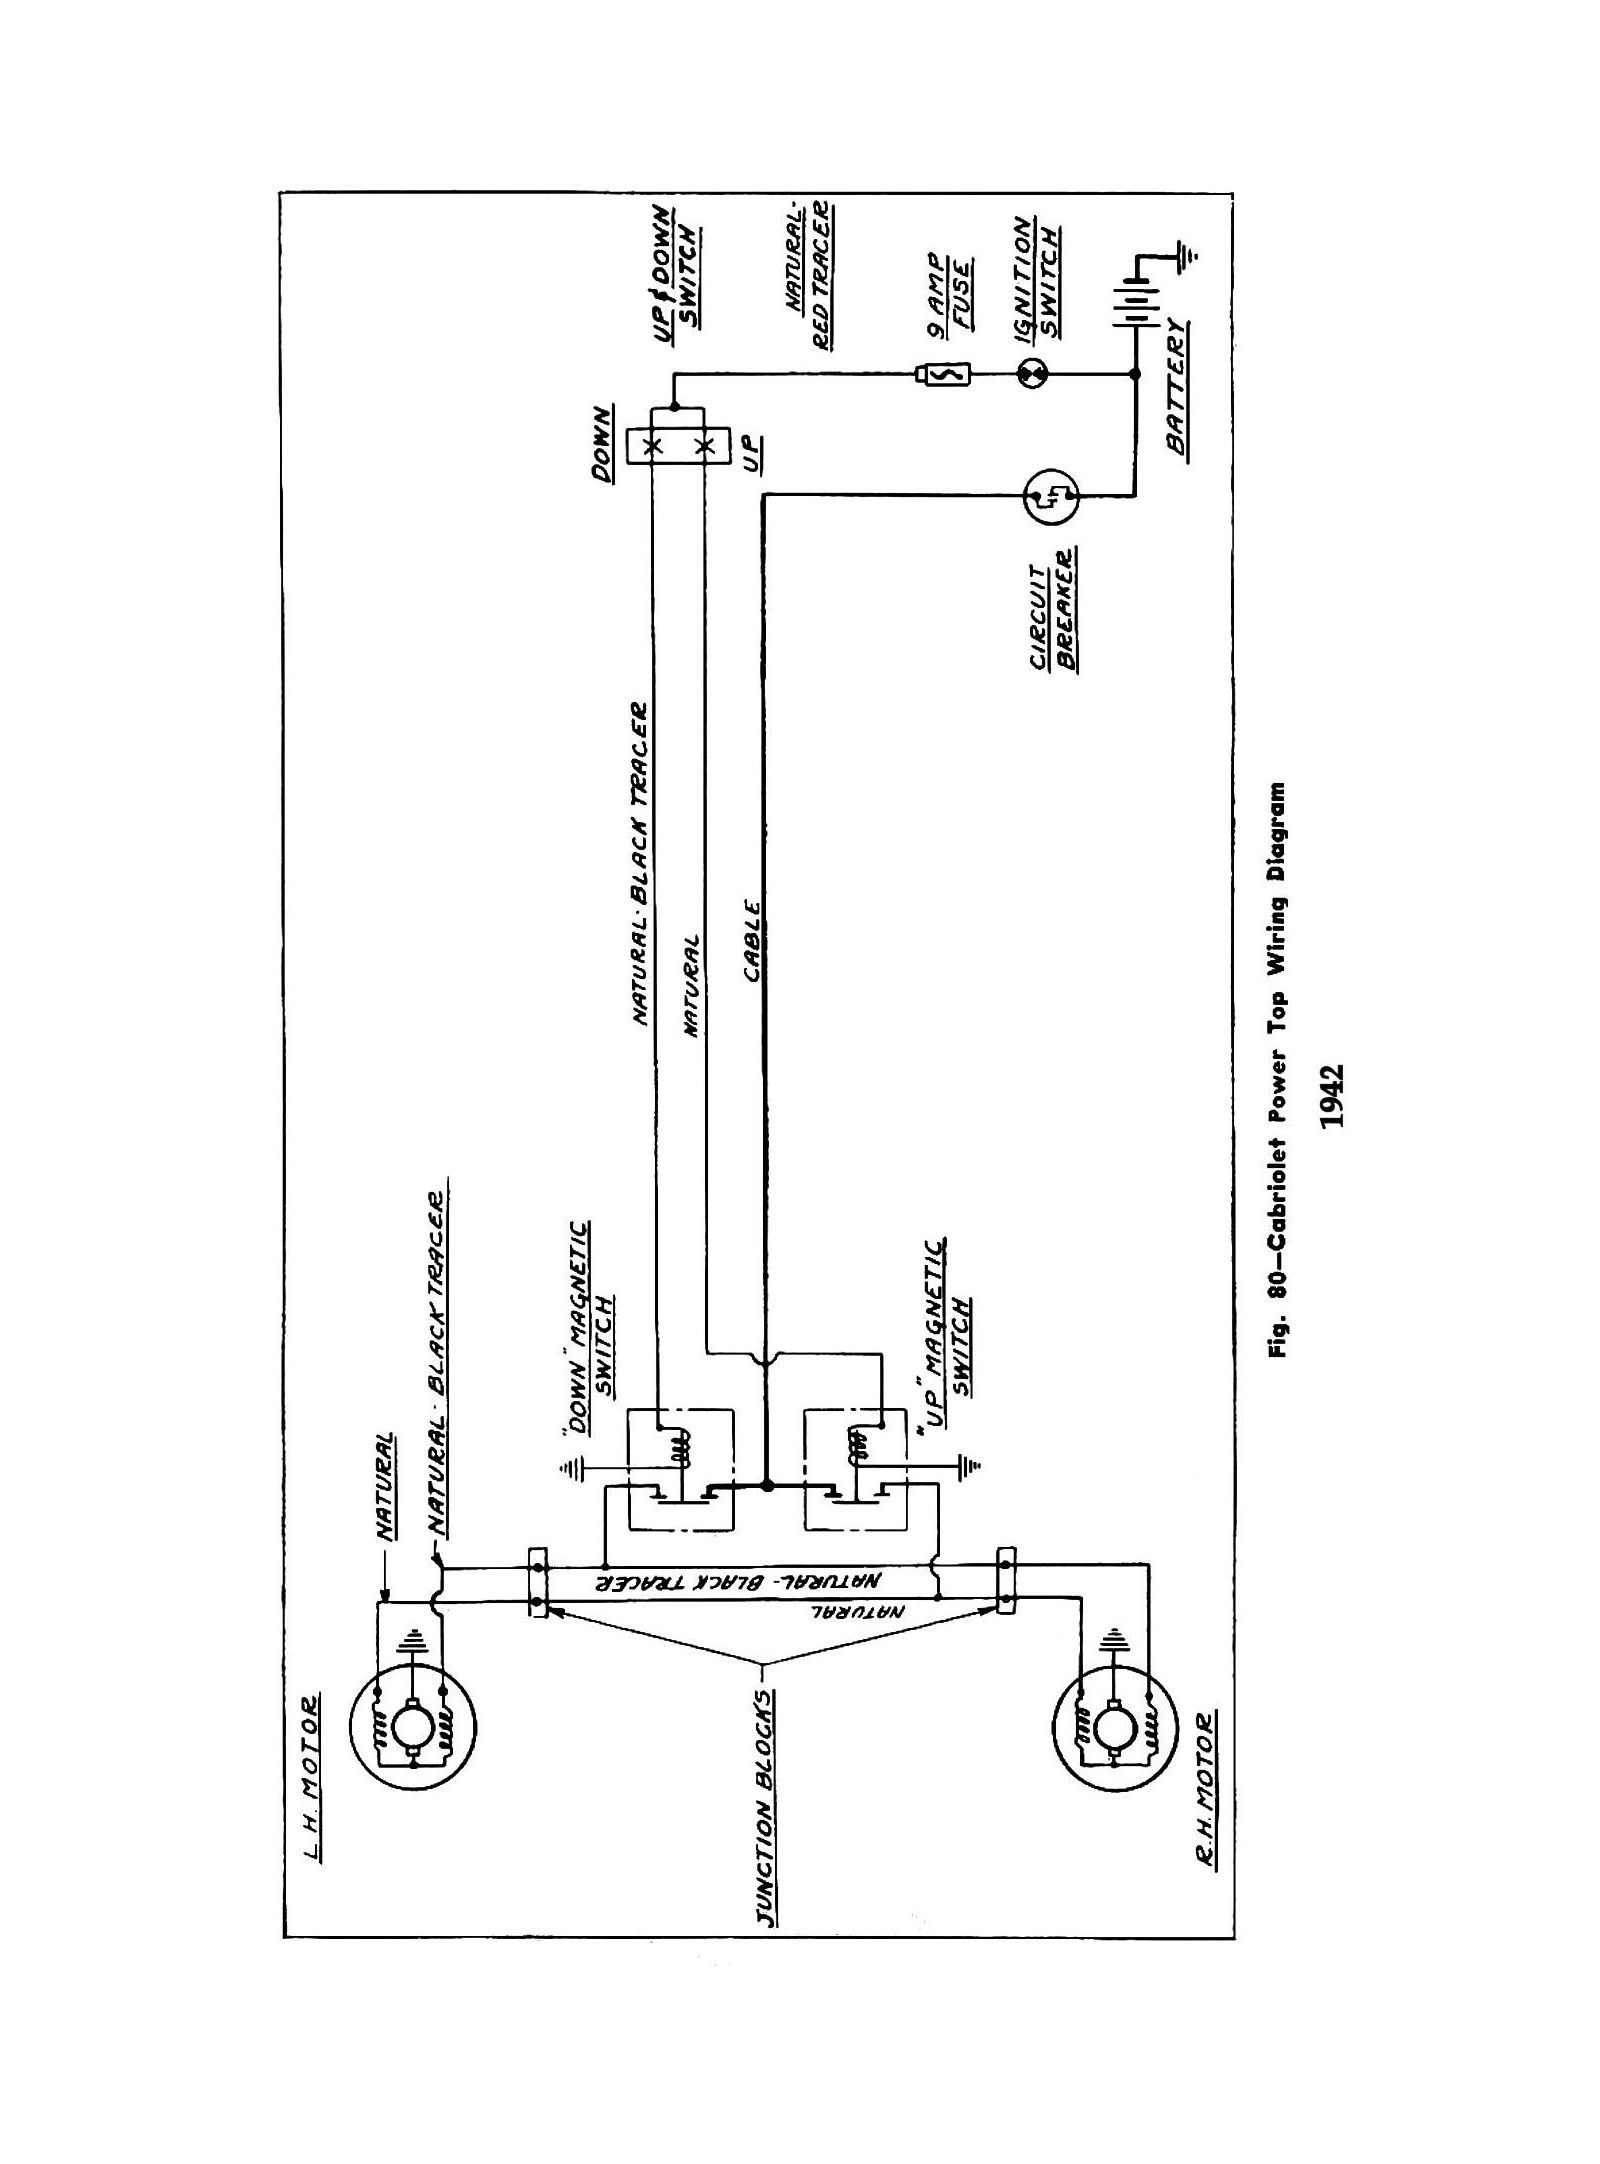 Chevy Wiring Diagrams Hardy Furnace Parts Diagram Free Download Schematic 1942 Truck Cabriolet Power Top Body